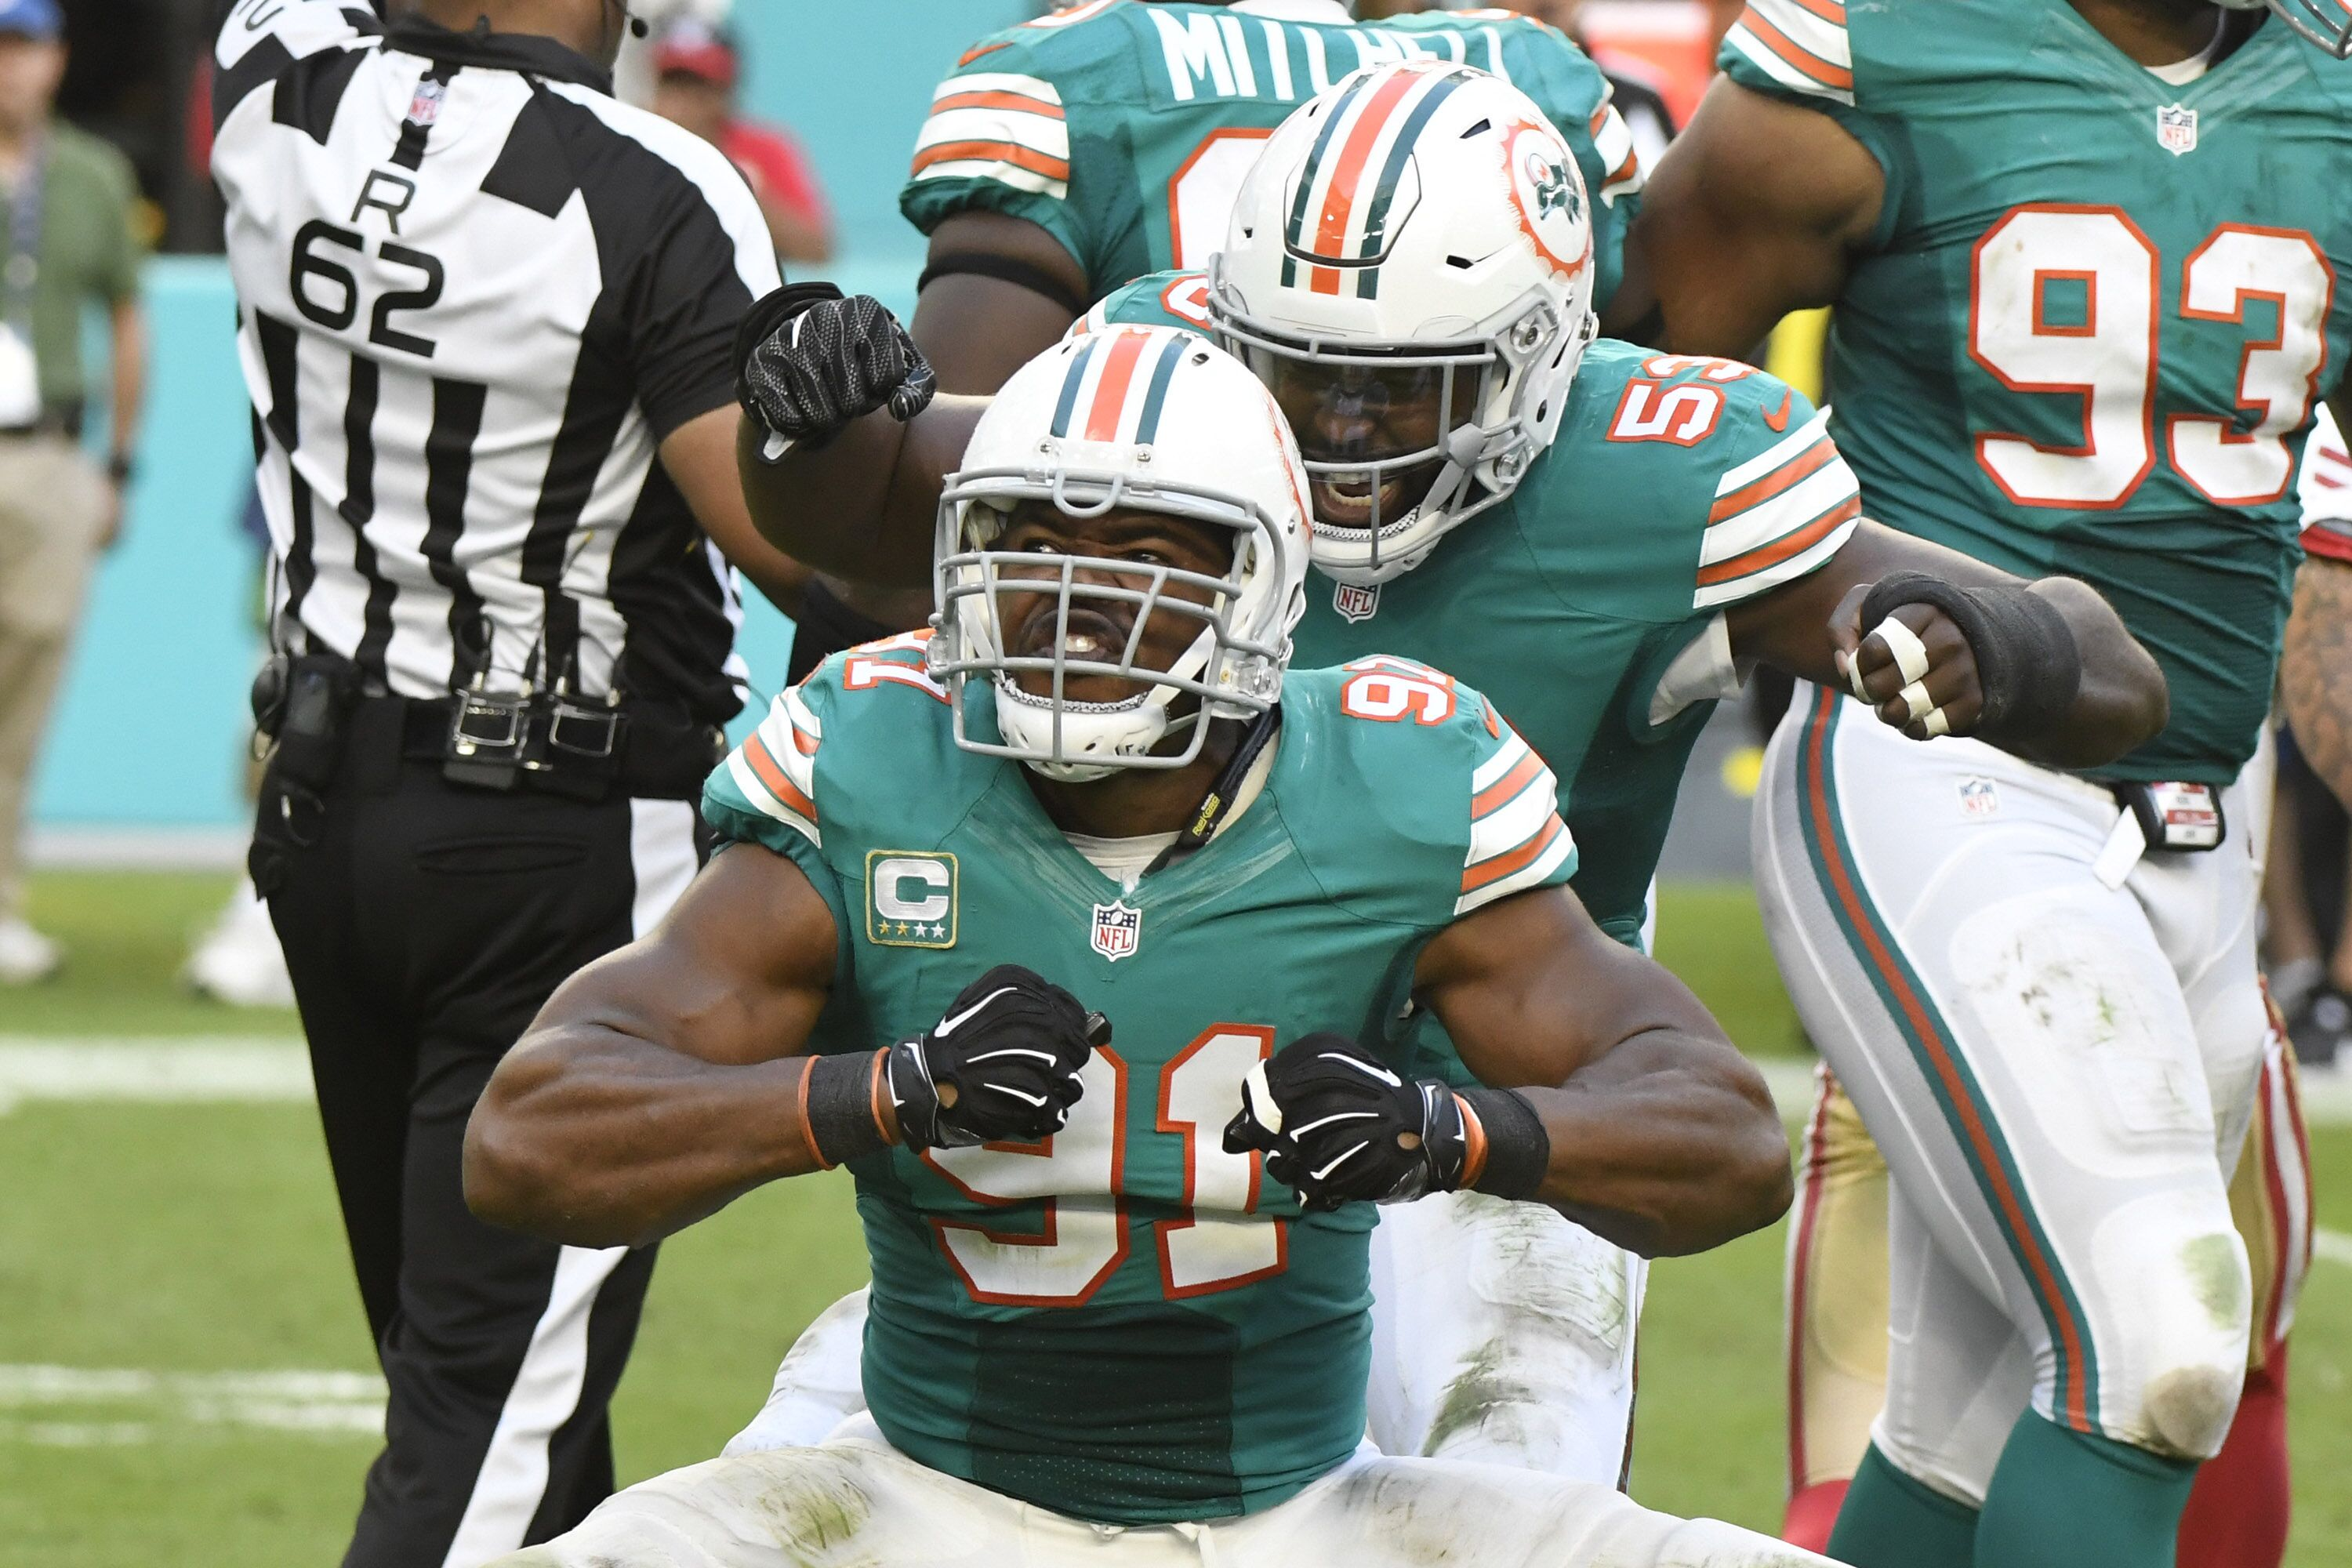 A popular Miami Dolphins player you simply do not like, name him!